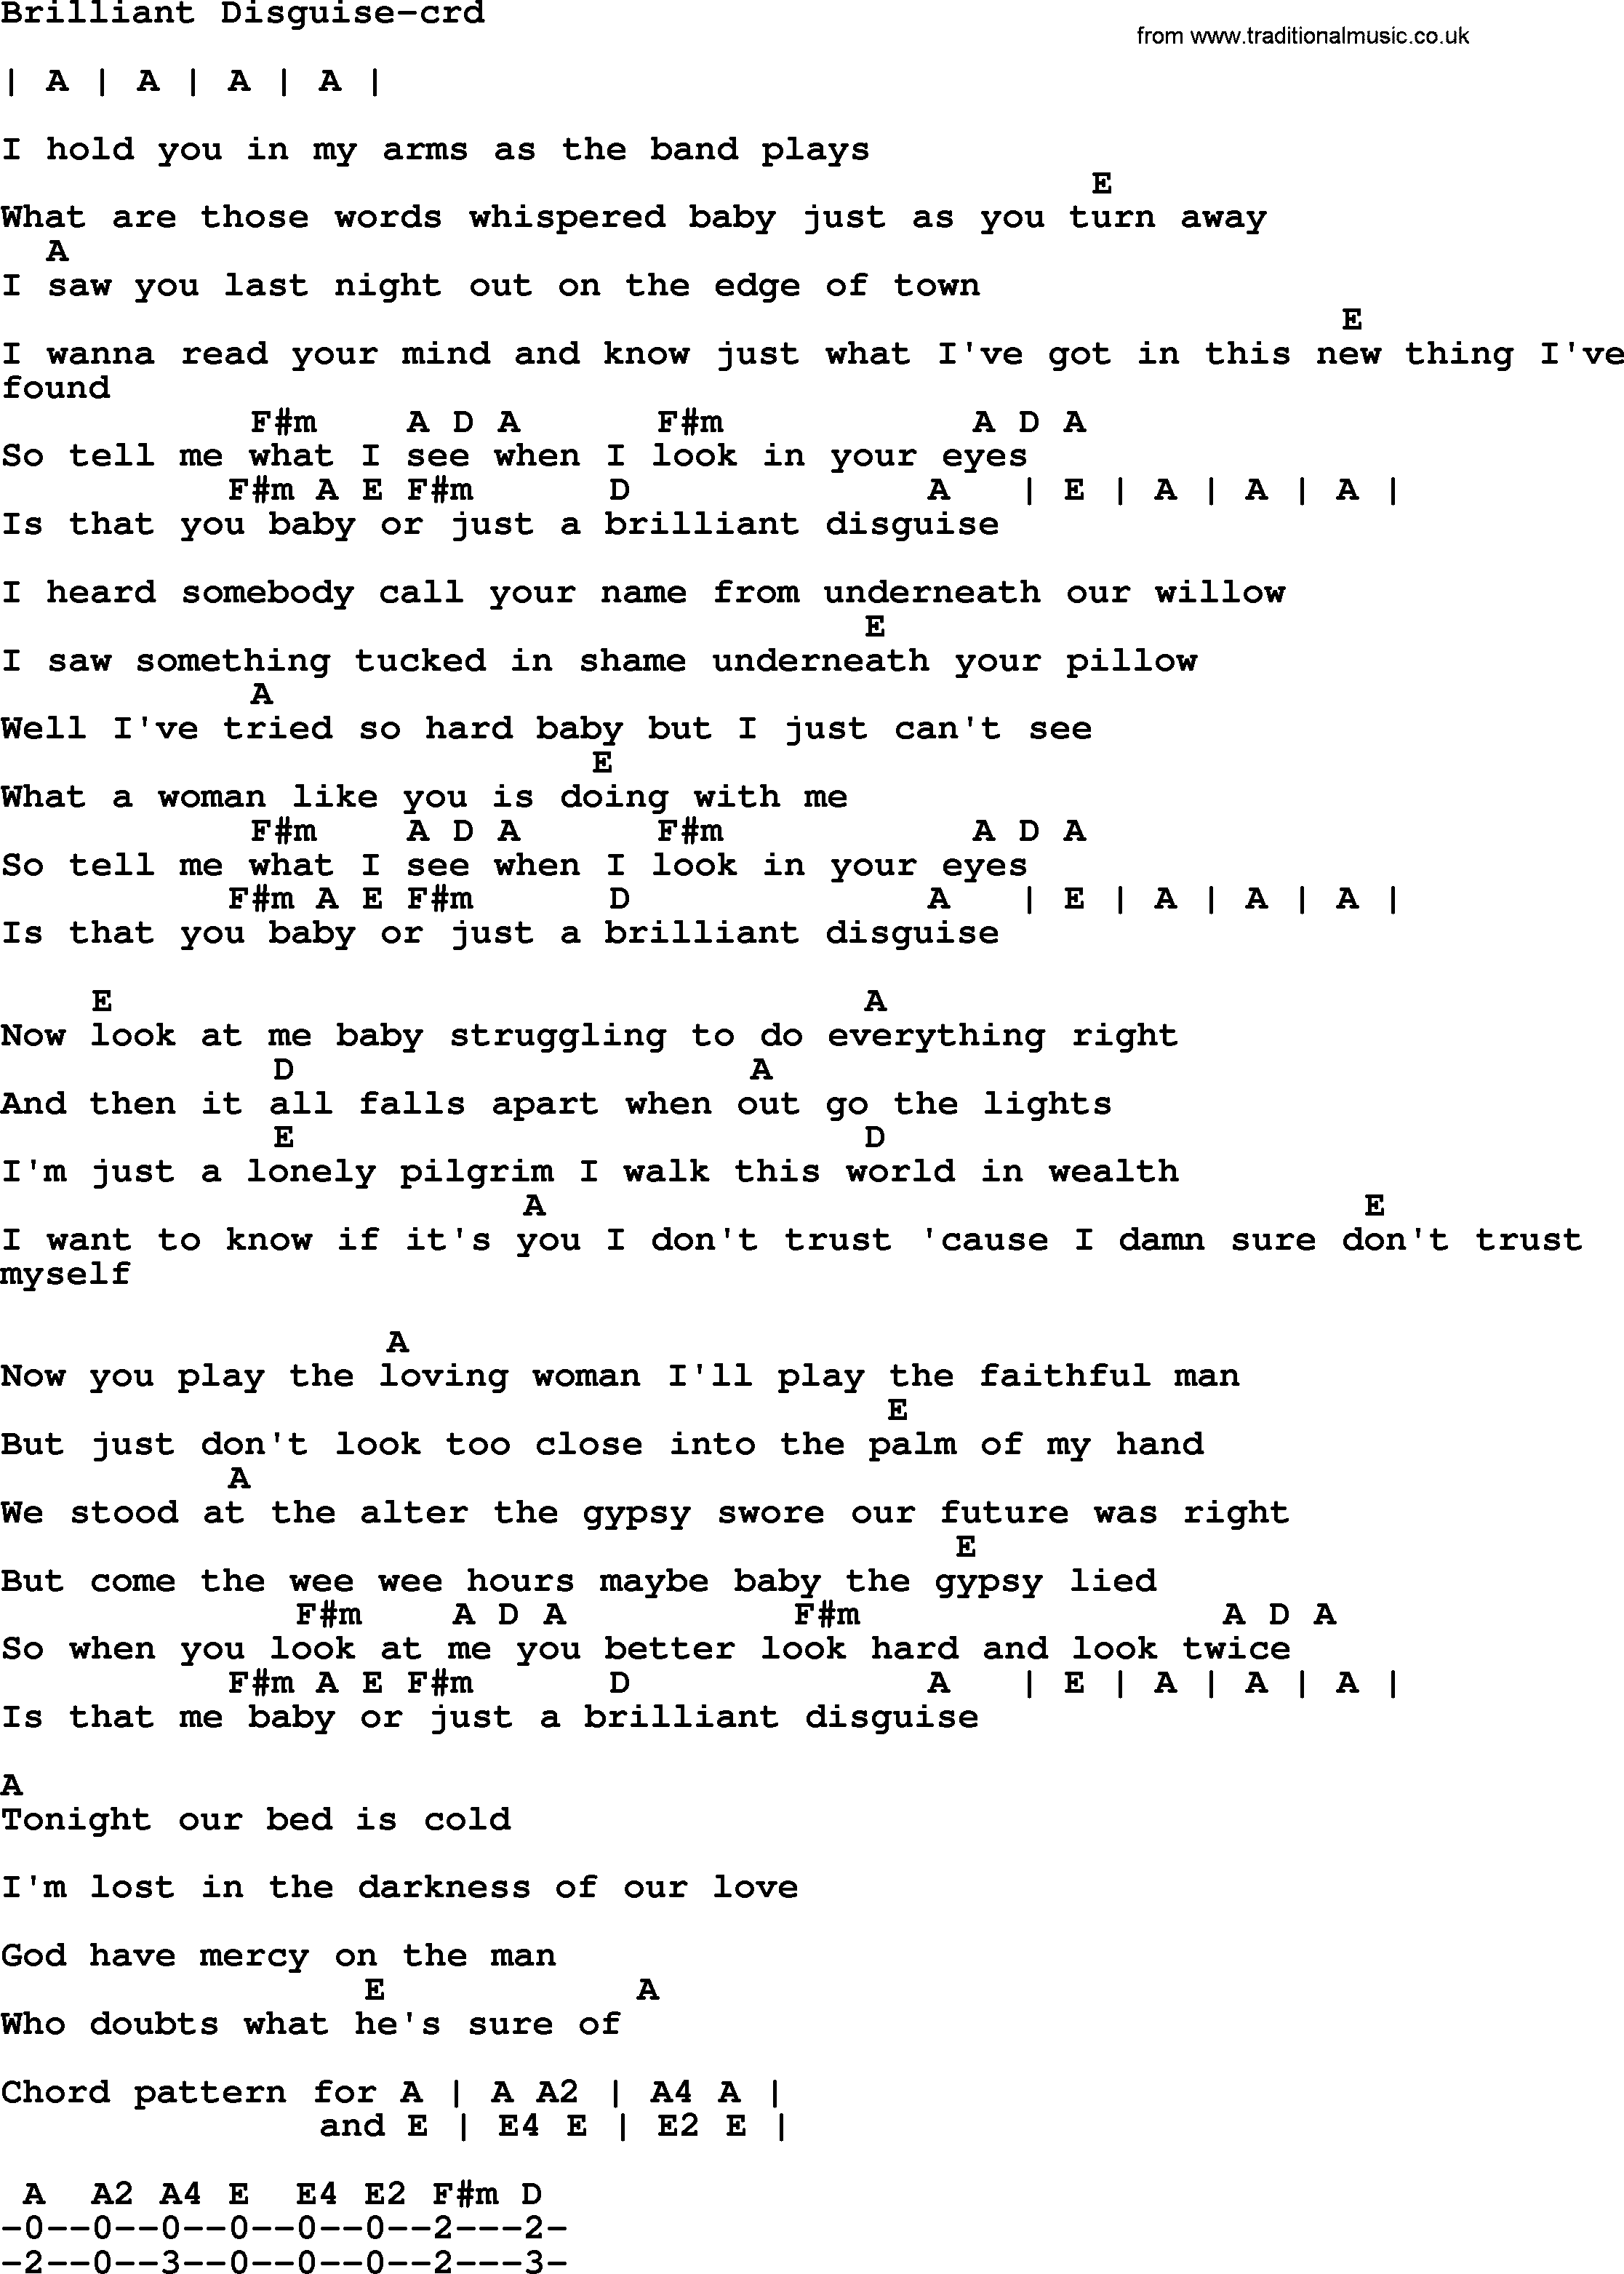 Bruce Springsteen Song Brilliant Disguise Lyrics And Chords Cool